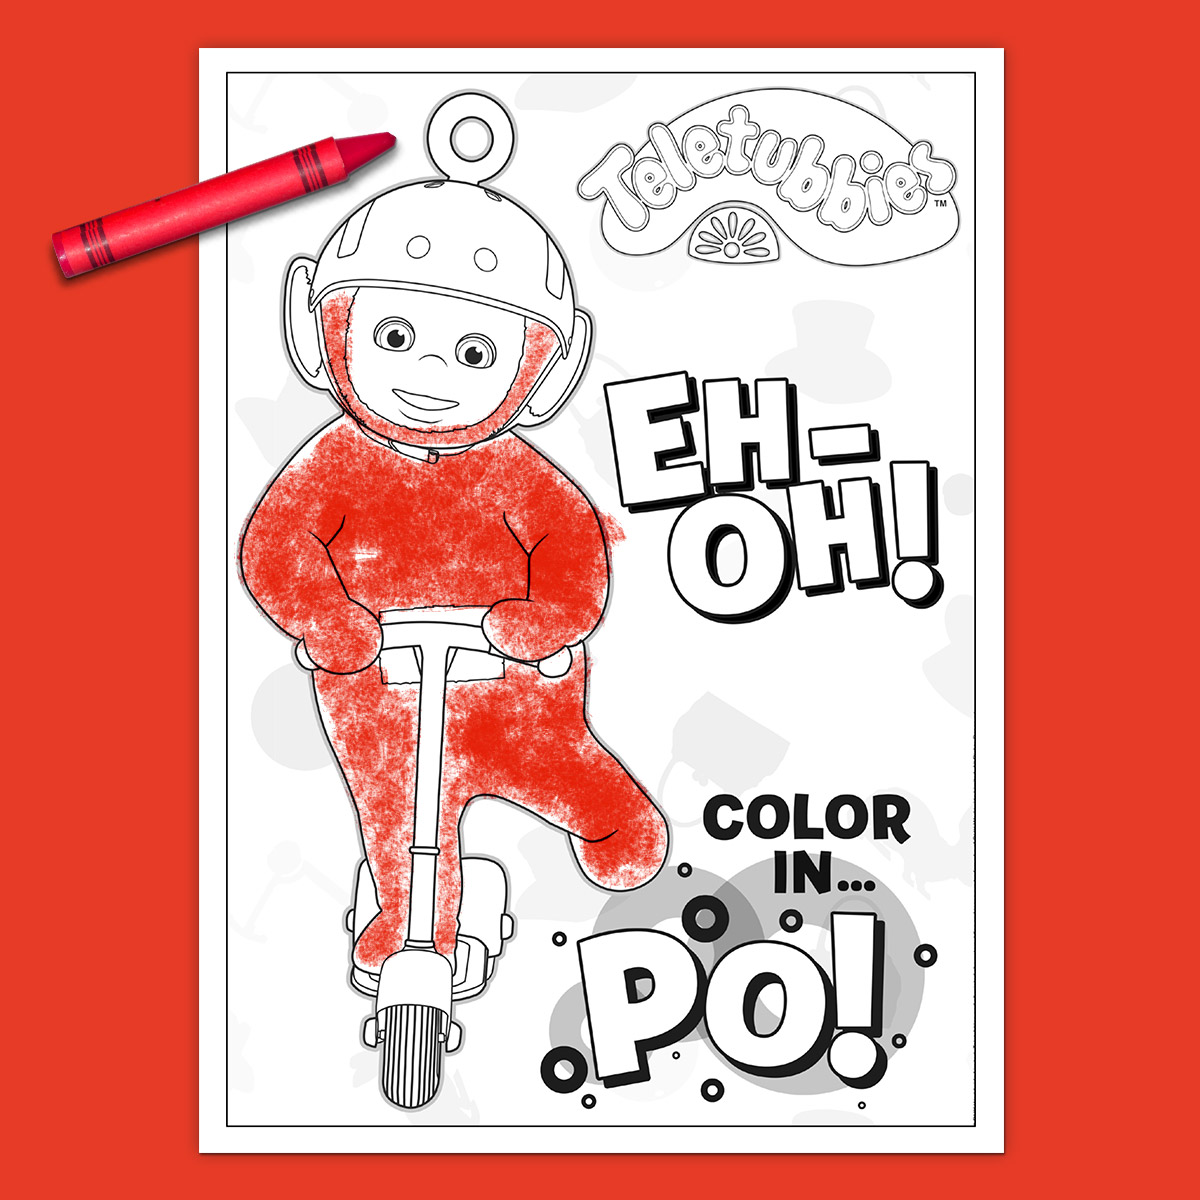 Teletubbies Coloring Page: Po | Nickelodeon Parents